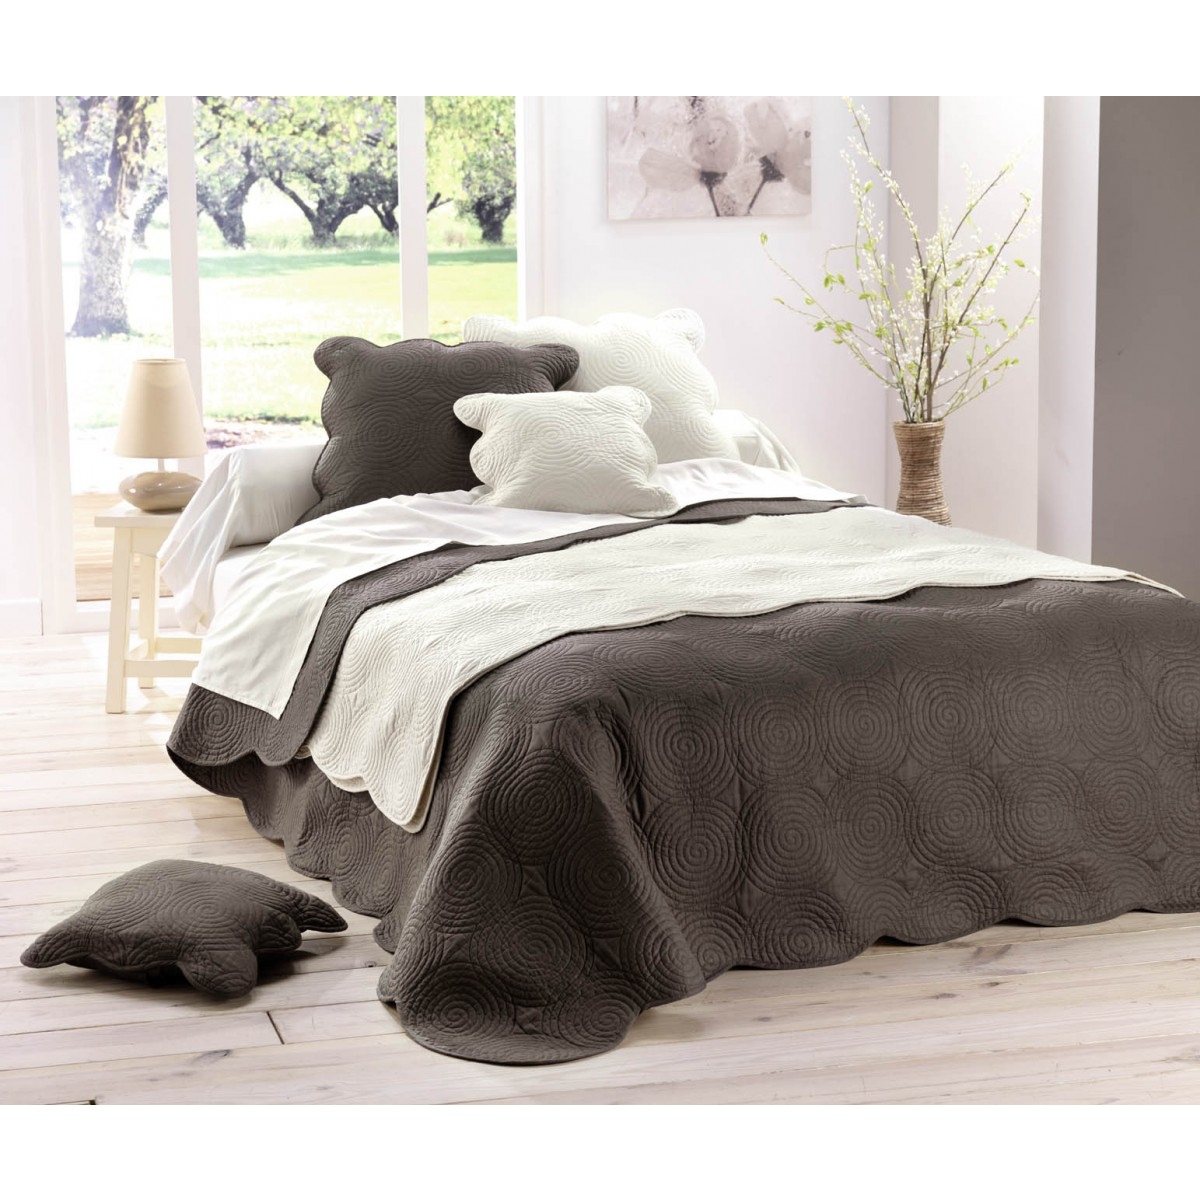 housse coussin matelasse 60x60 boutis naturel les douces. Black Bedroom Furniture Sets. Home Design Ideas